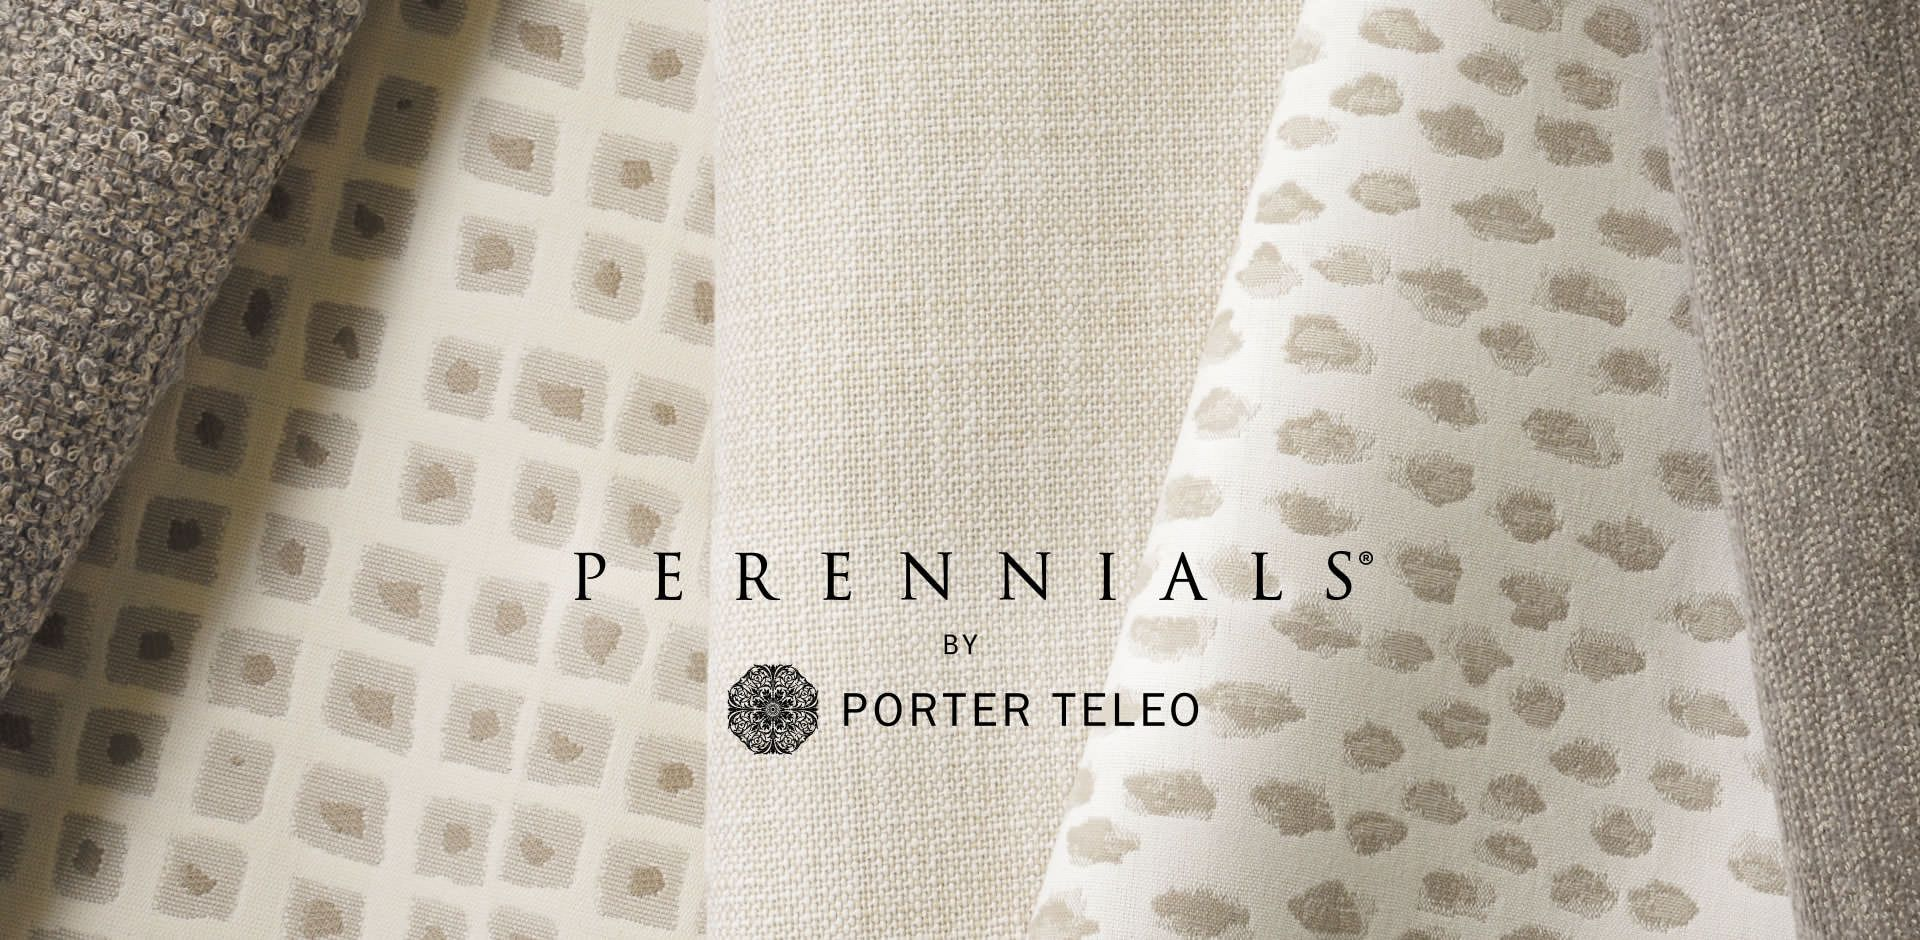 Home | Perennials Luxury Performance Fabrics | Outdoor Living ...